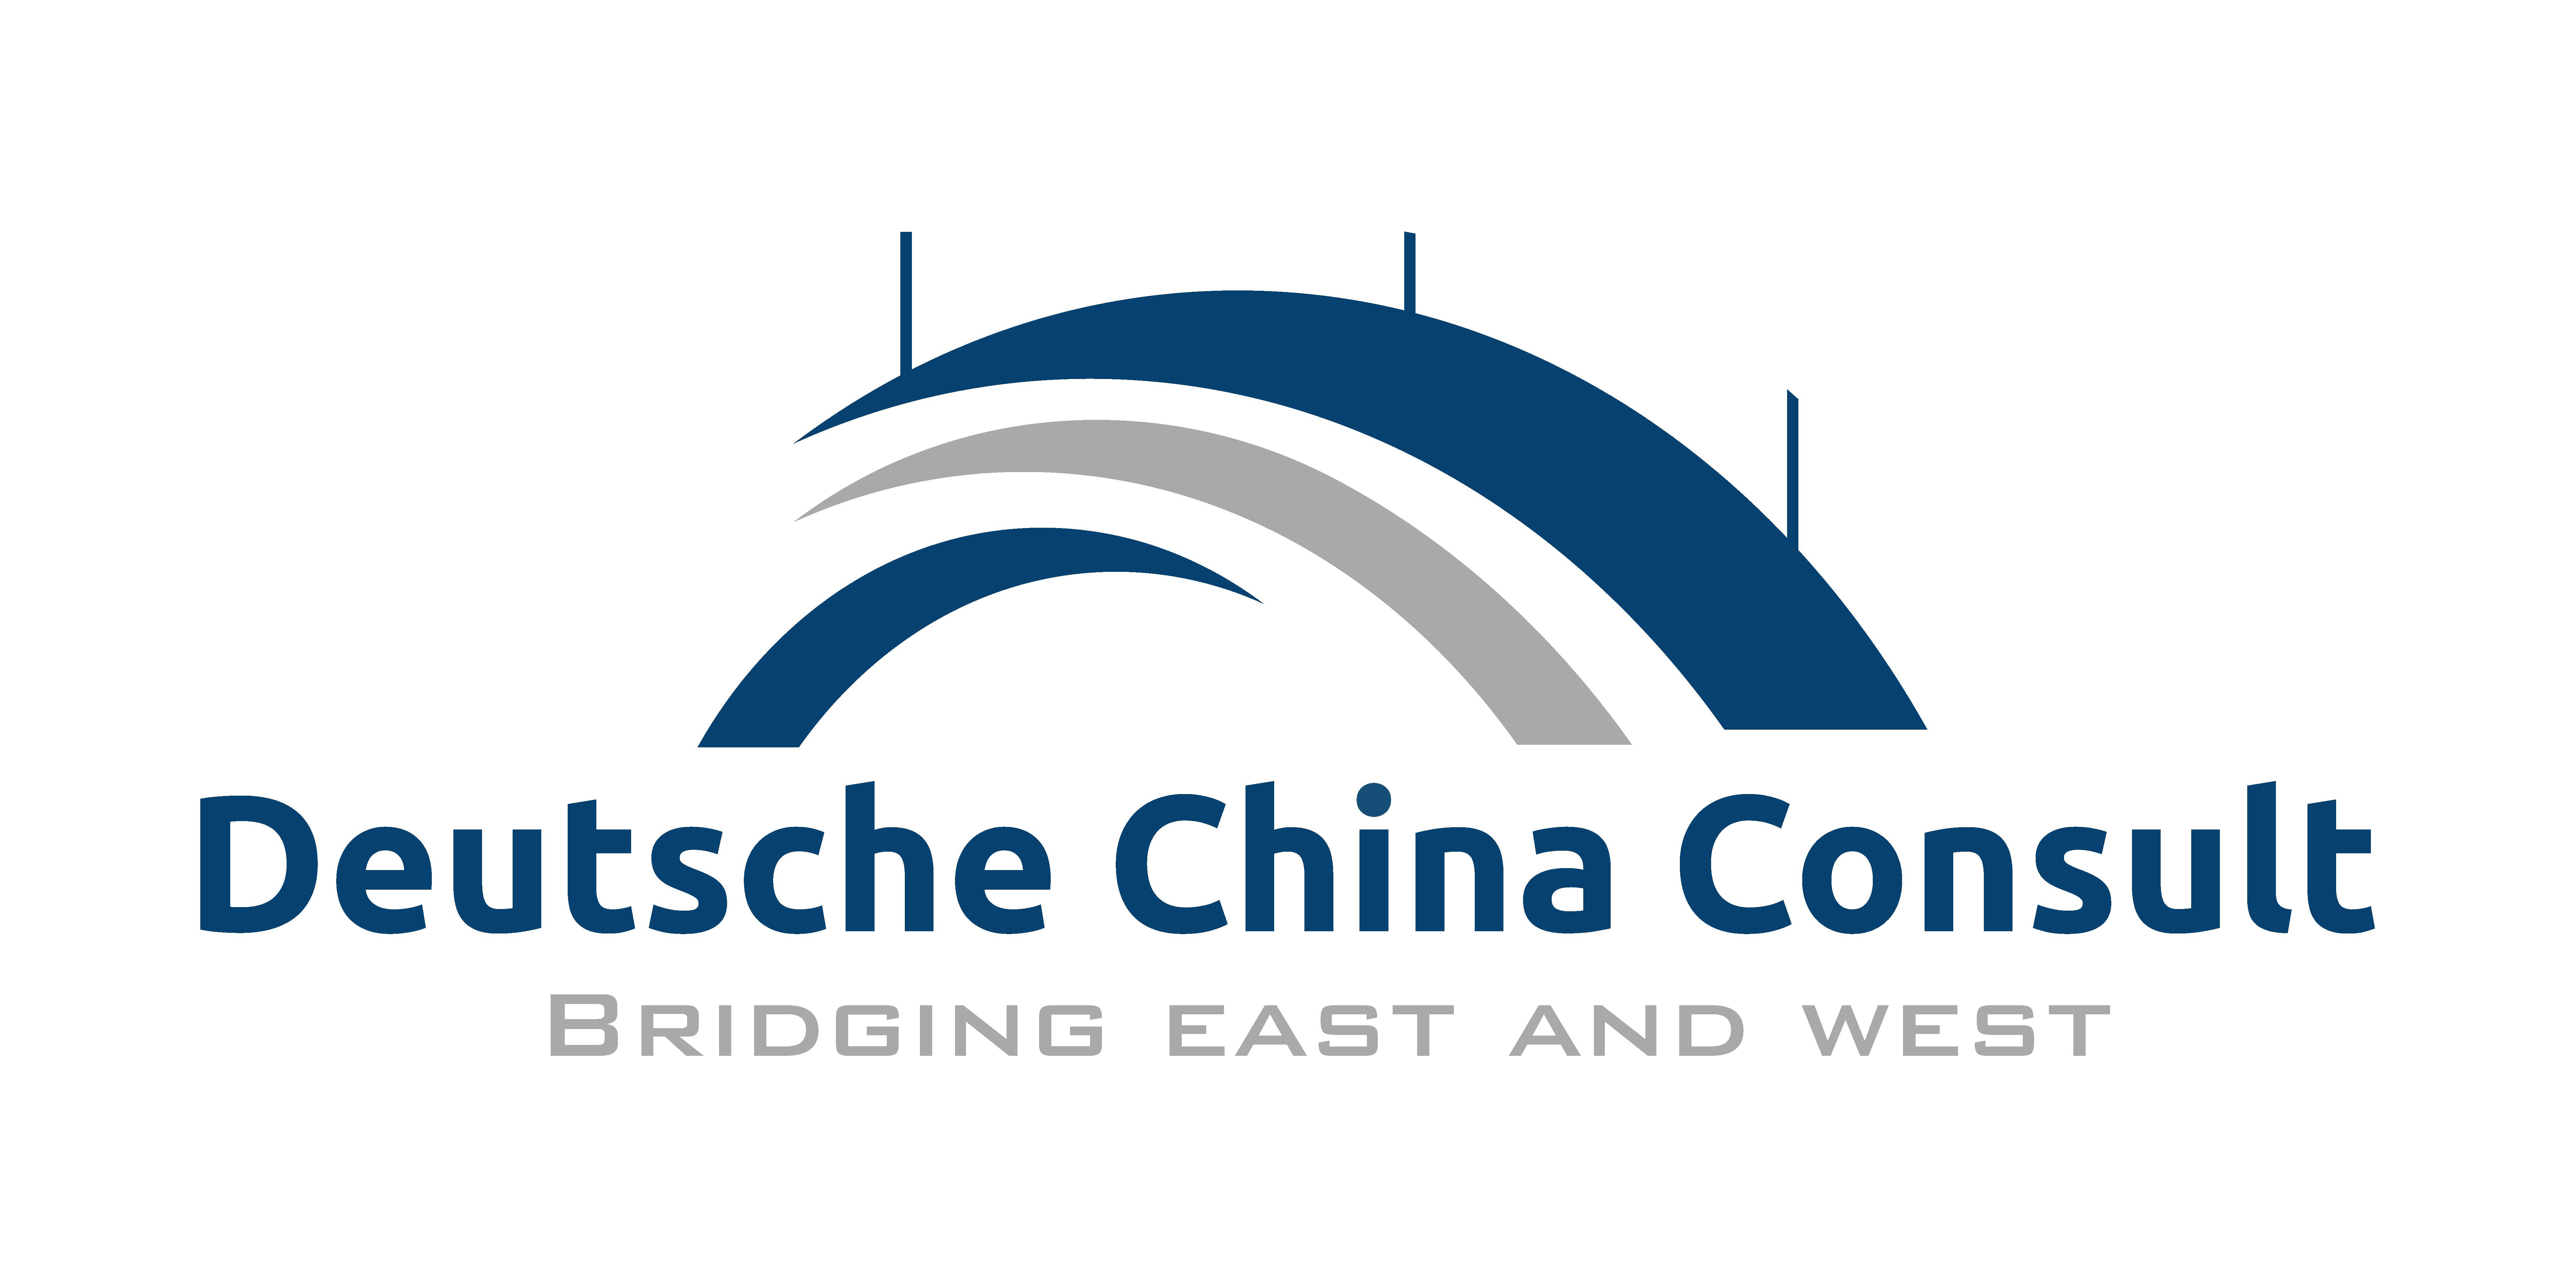 Deutsche China Consult